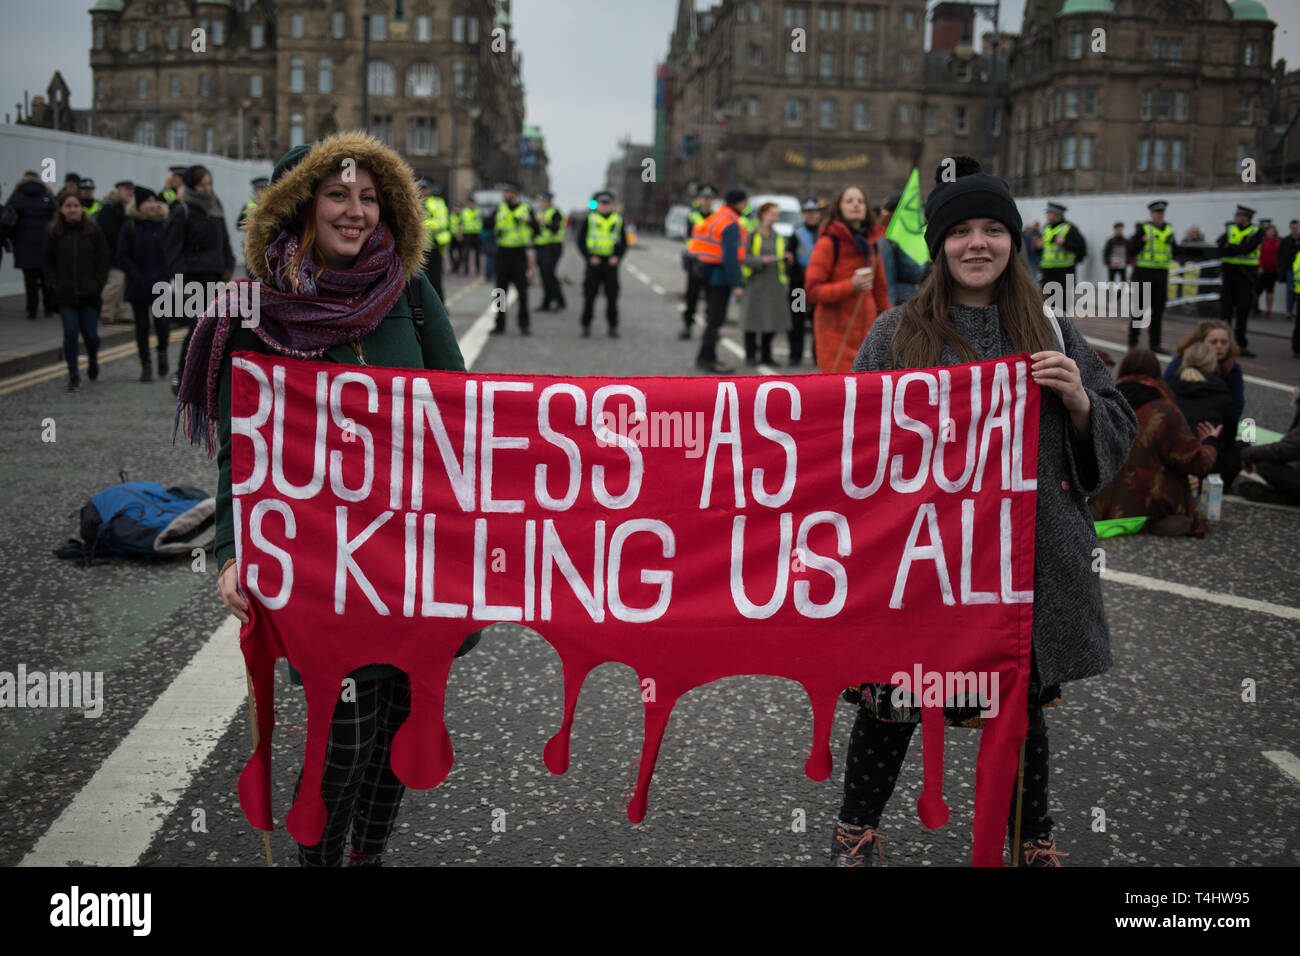 Edinburgh, Scotland, 16th April 2019. Extinction Rebellion (Scotland) climate protestors shut North Bridge to traffic during an 'International Day of Rebellion', asking for the government to declare a climate emergency, in Edinburgh, Scotland, on 16 April 2019. Credit: Jeremy Sutton-Hibbert/Alamy Live News - Stock Image